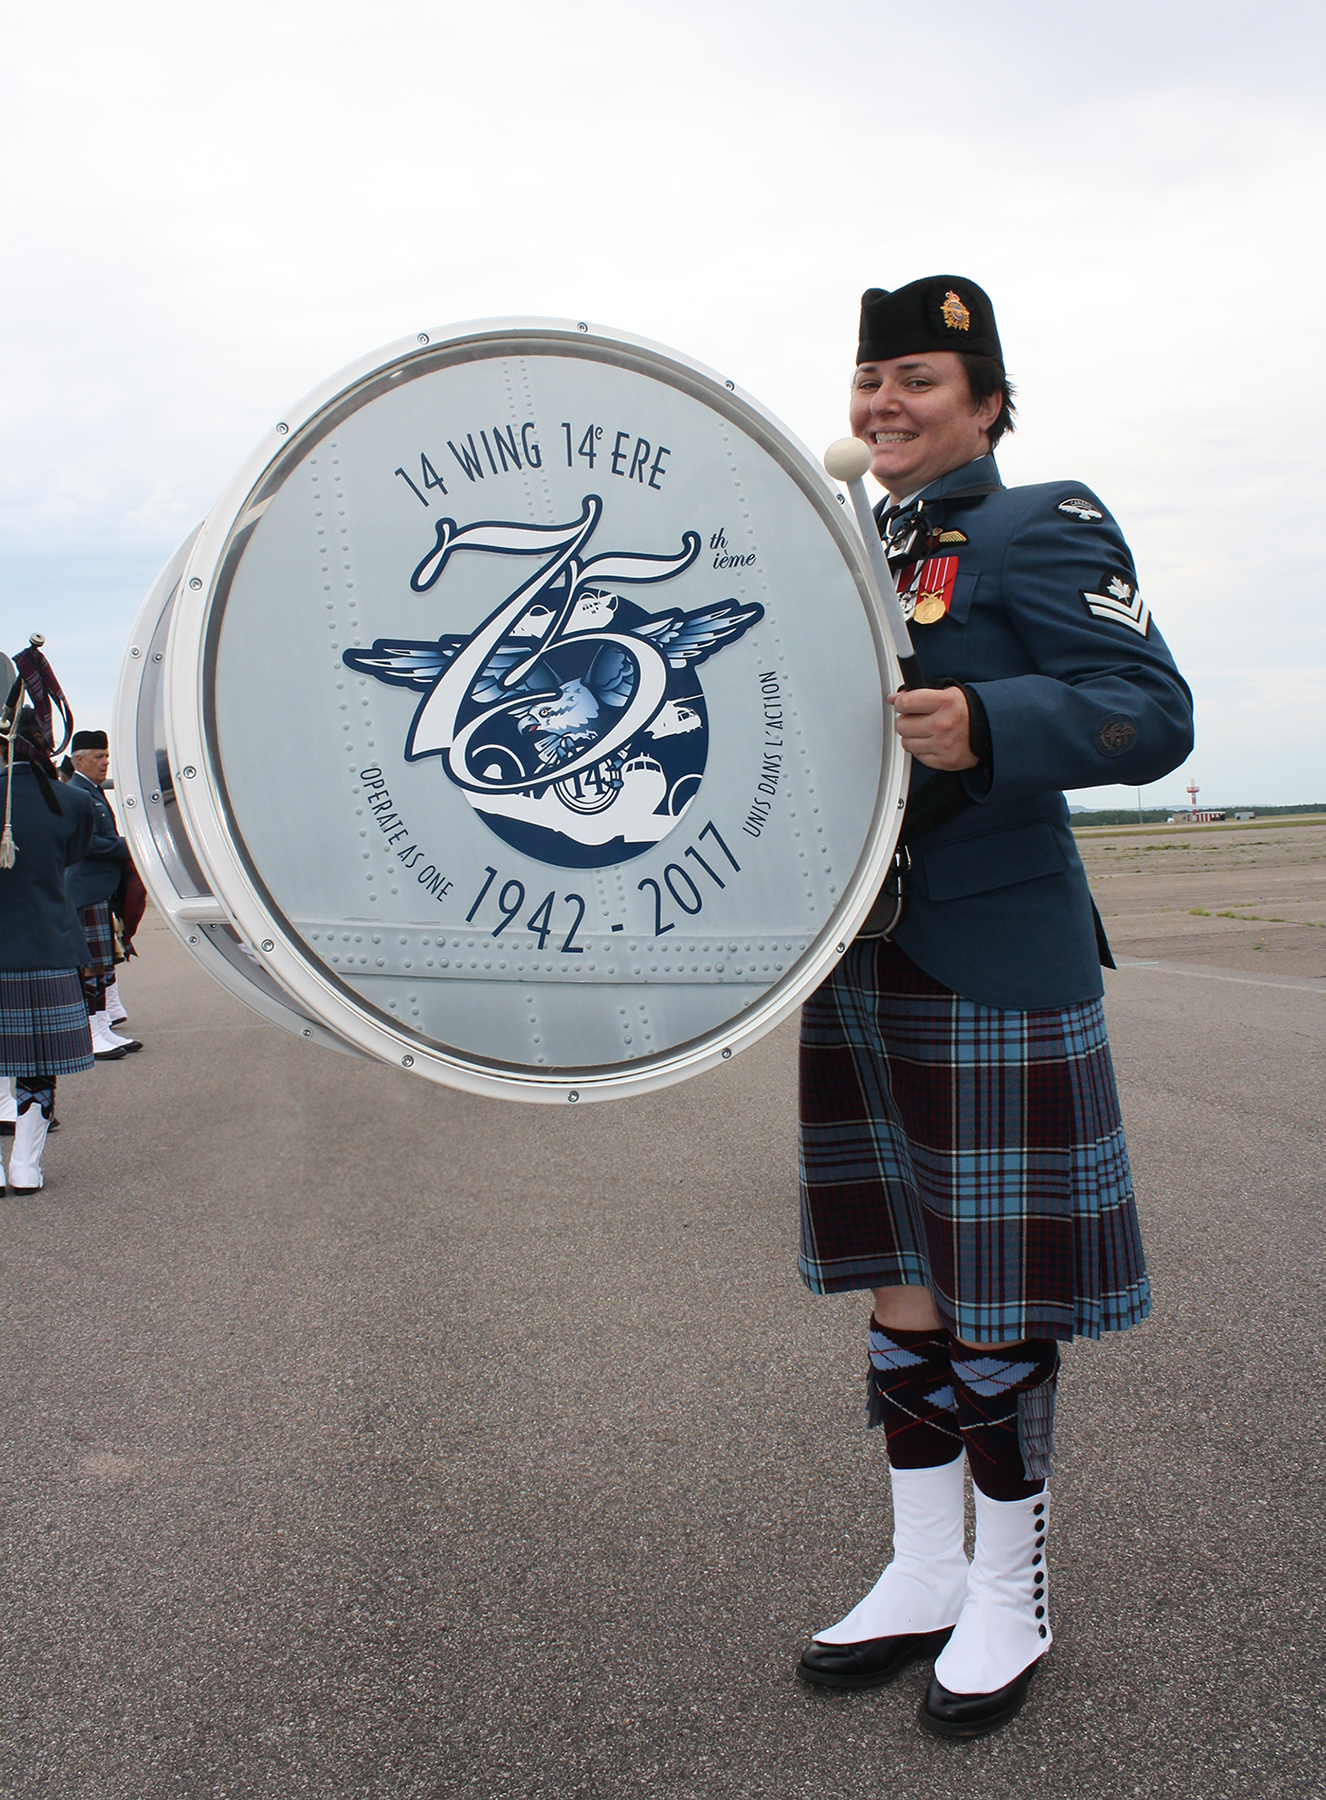 A drummer in Scottish regalia stands with her bass drum, while other band members in regalia stand in the background.